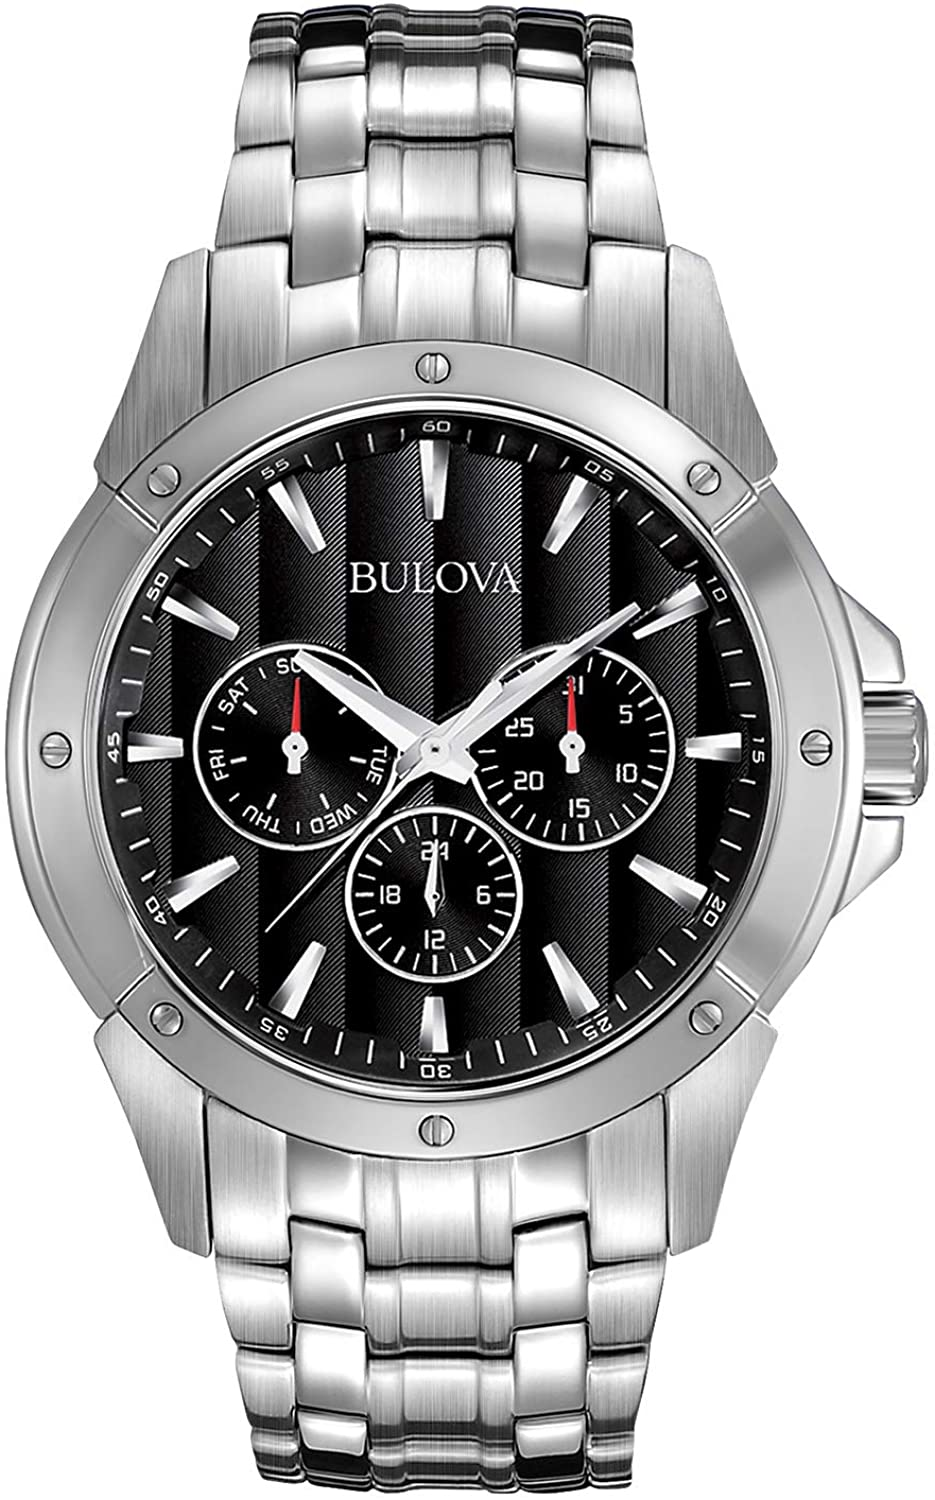 Bulova Men s 96C107 Black Dial Stainless Steel Watch